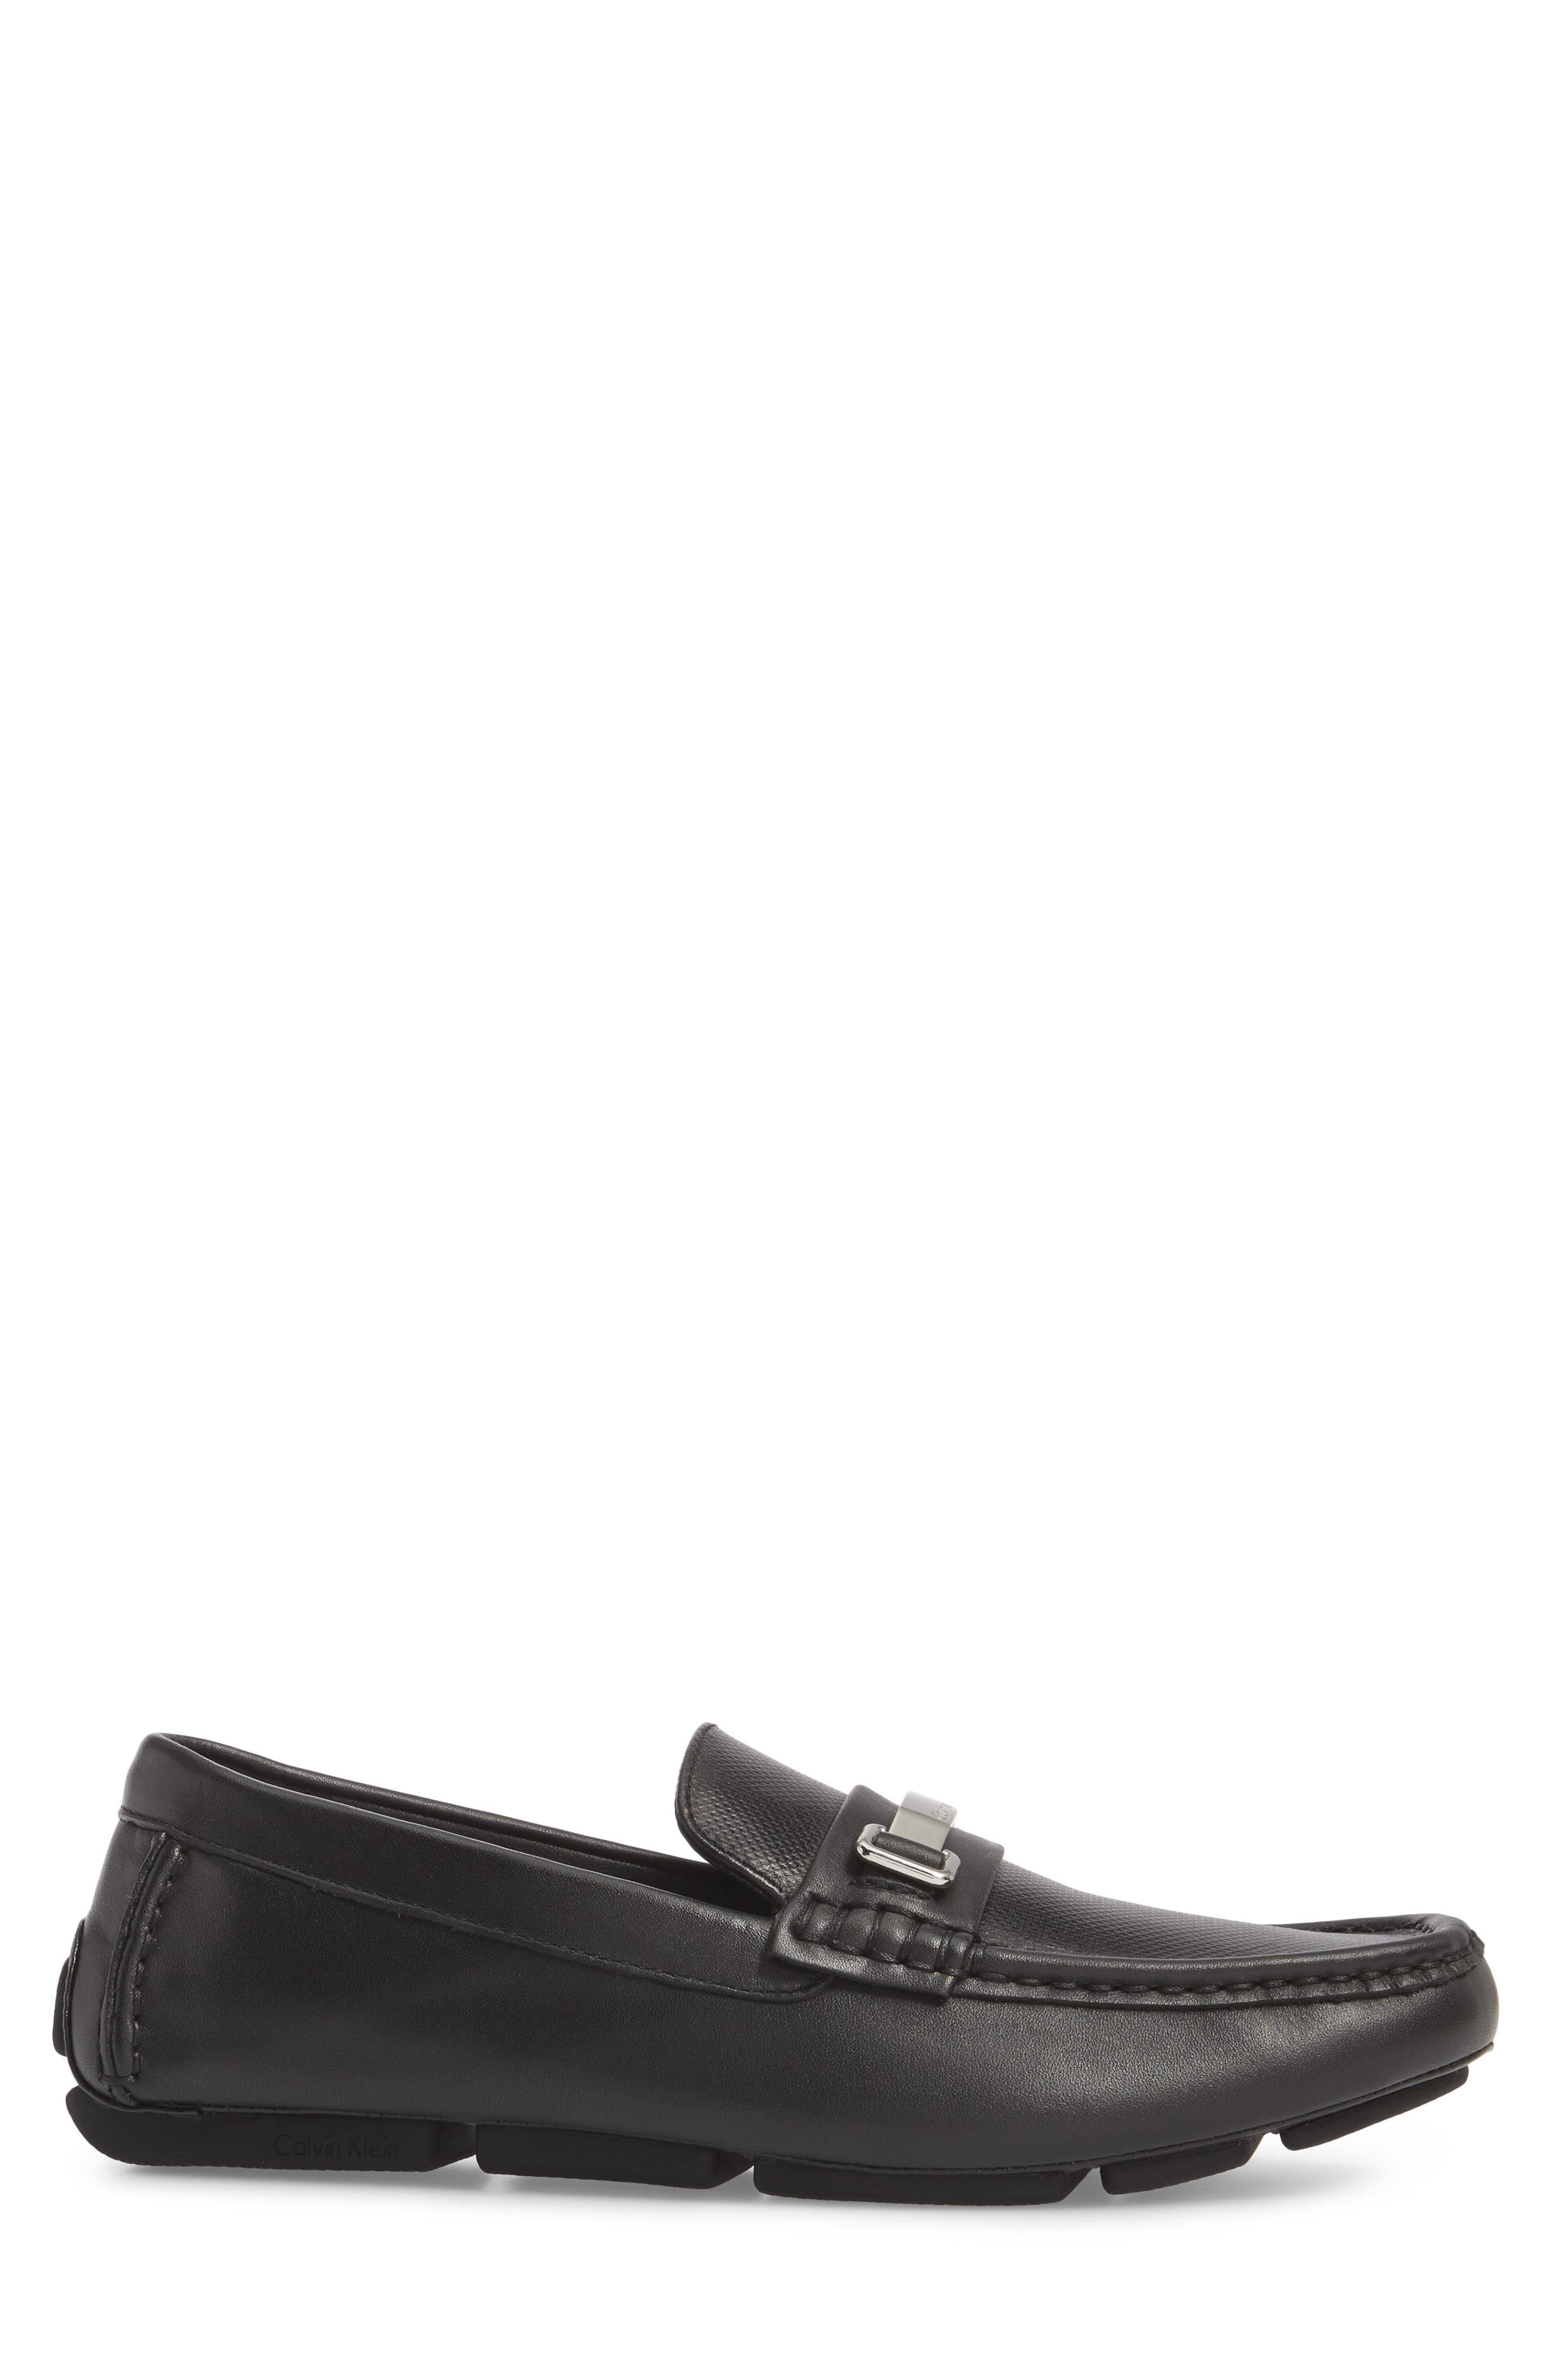 CALVIN KLEIN, Maddix Textured Driving Moccasin, Alternate thumbnail 3, color, BLACK LEATHER